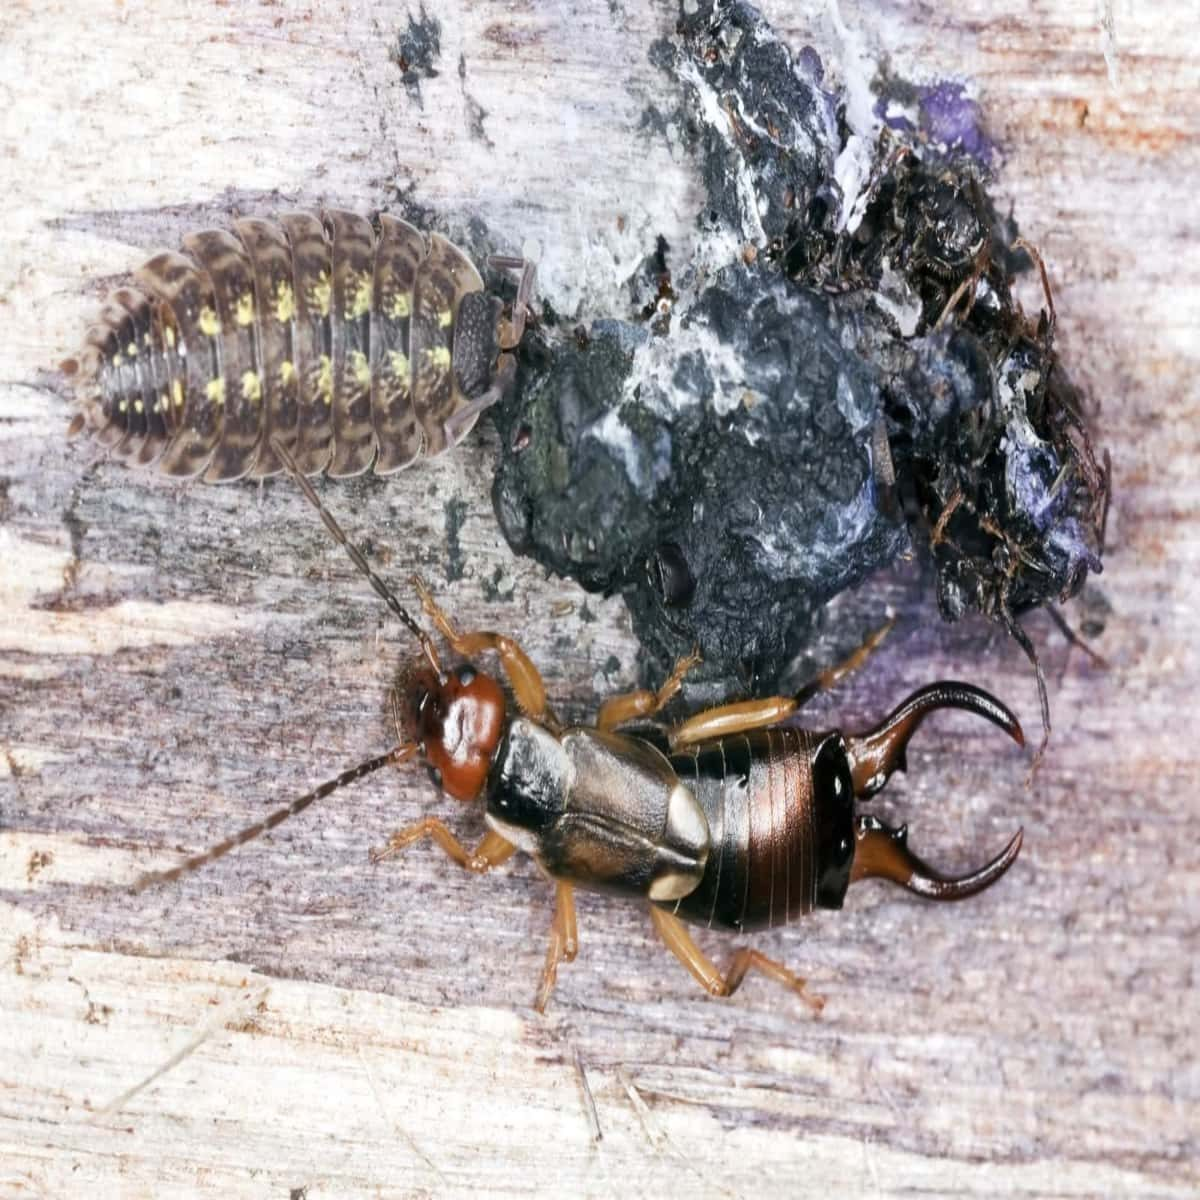 Earwigs cleaning droppings